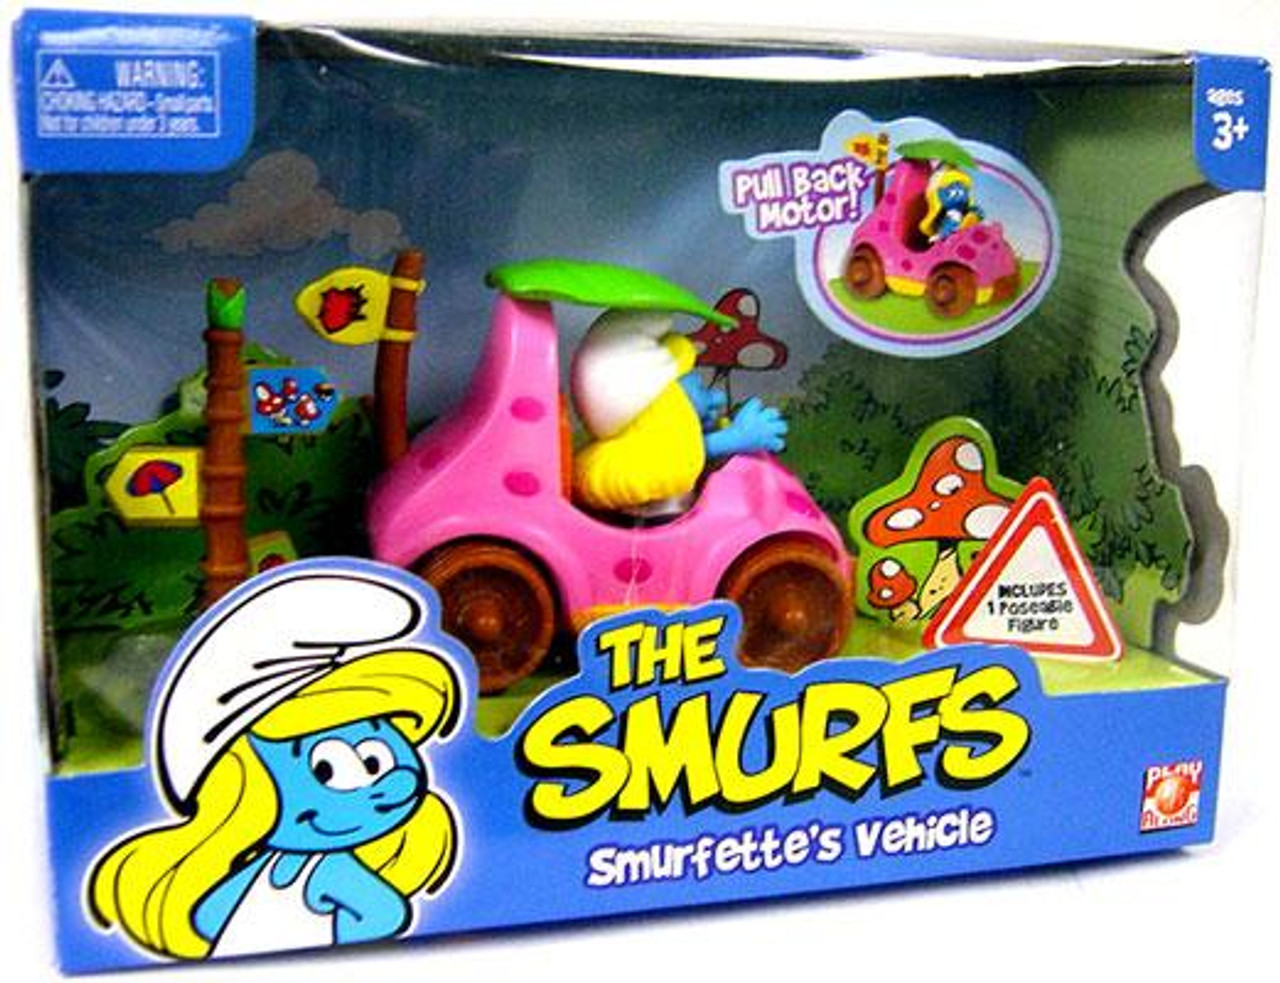 The Smurfs Smurfette's Vehicle Figure Set